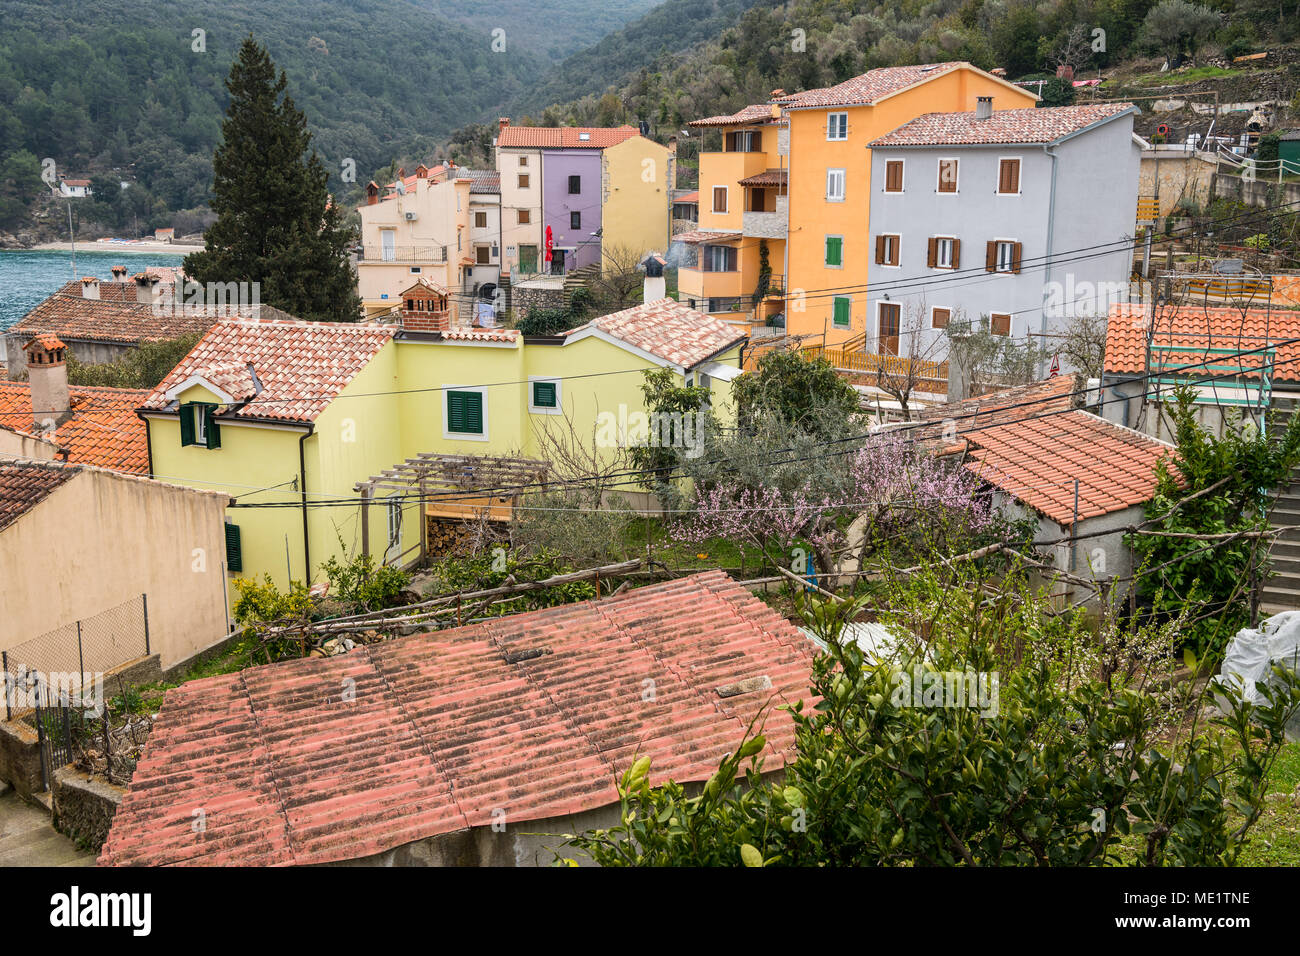 The small village Valun on the Island Cres (Croatia) on a cloudy day in spring Stock Photo